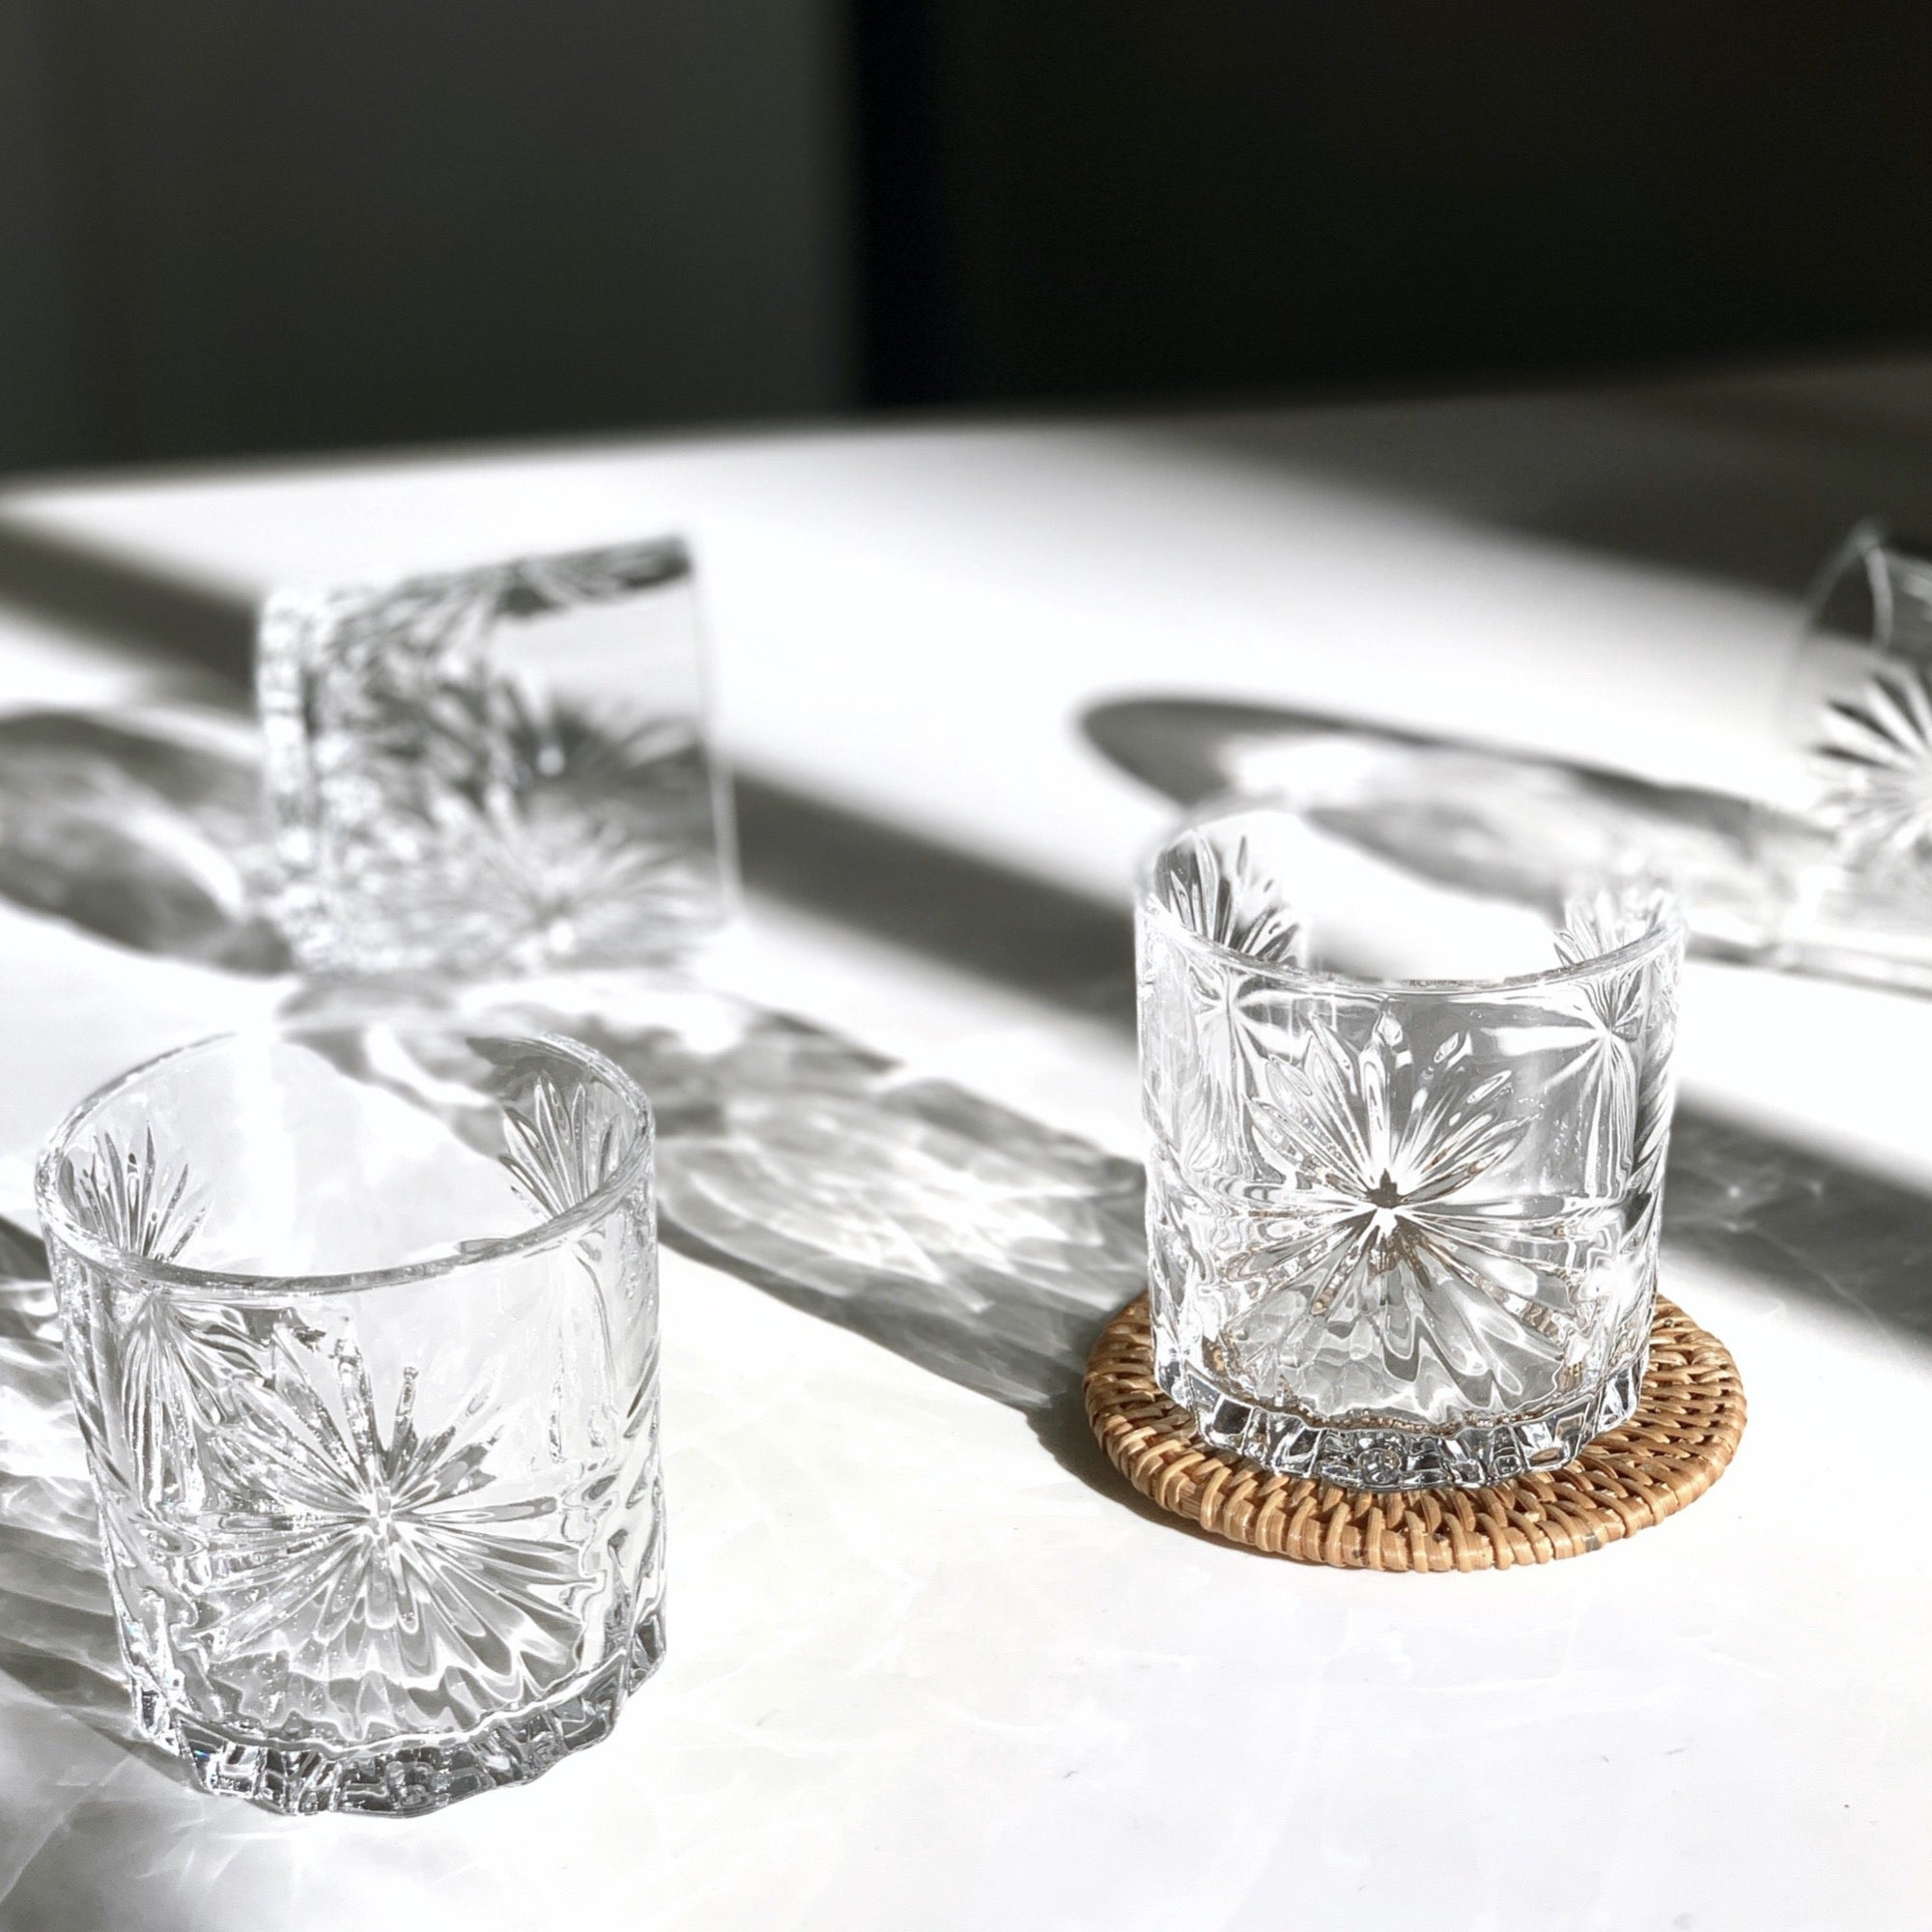 embellished crown-cut old fashioned whiskey glass